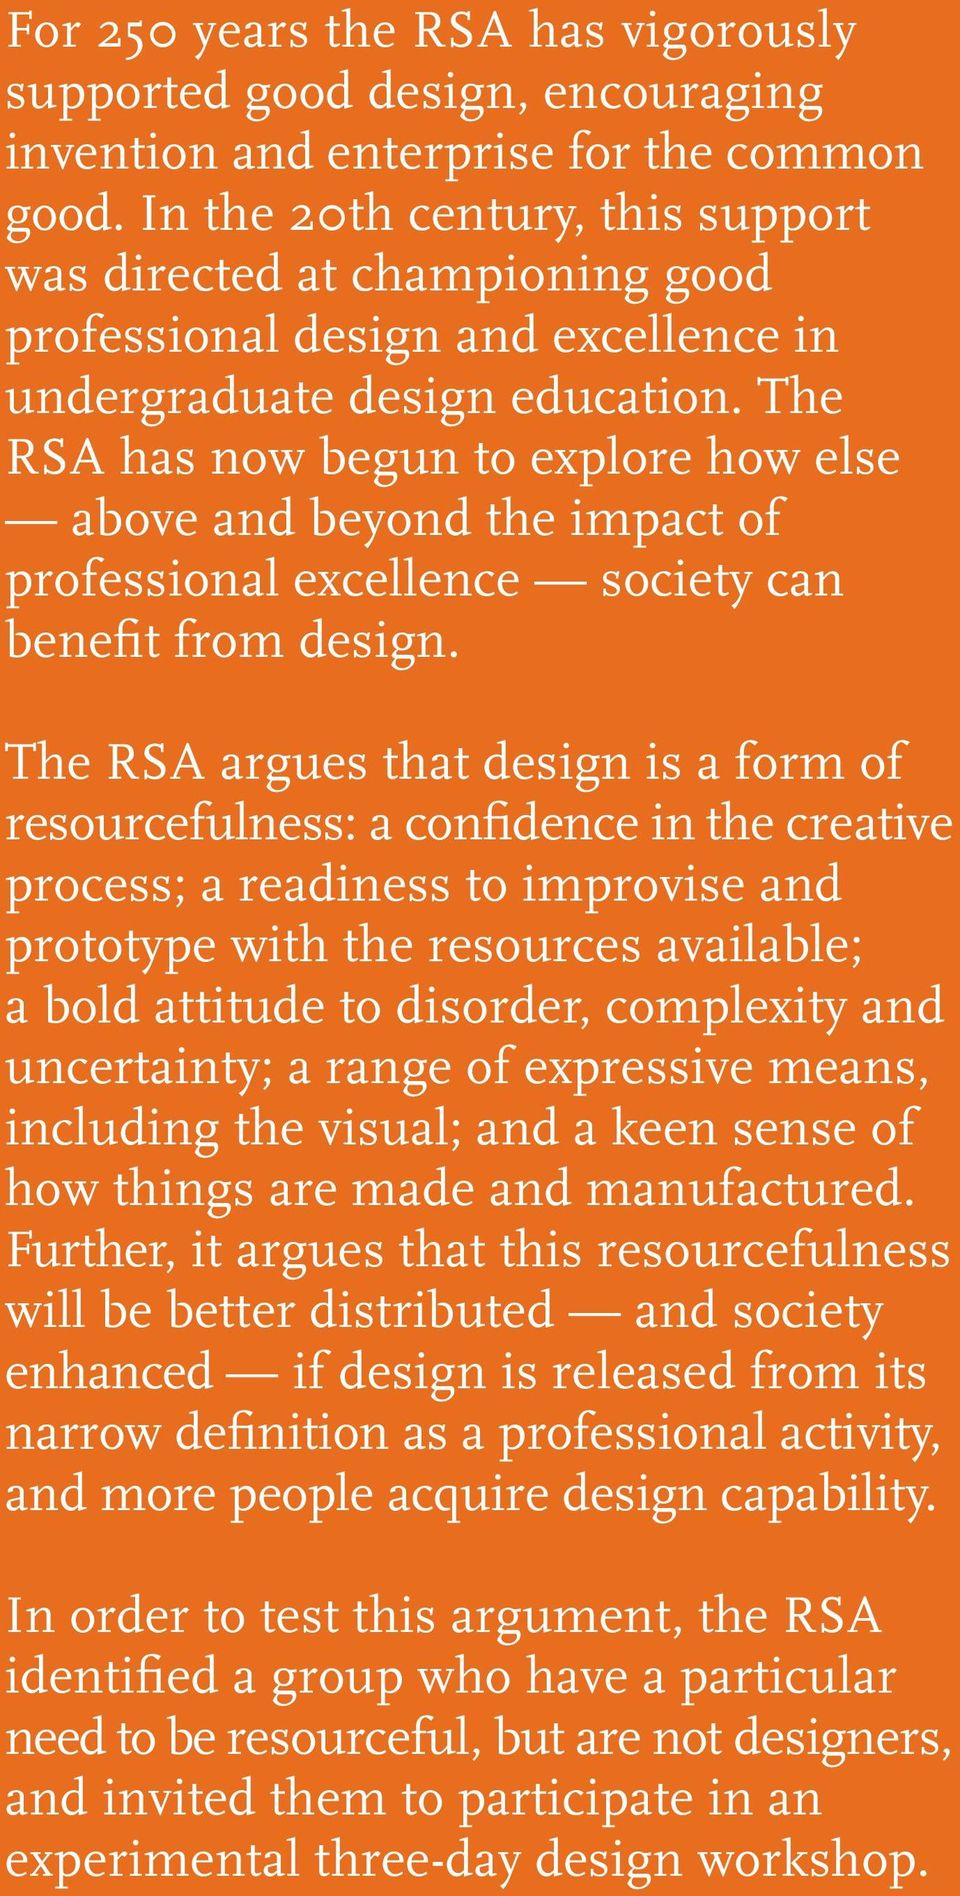 The RSA has now begun to explore how else above and beyond the impact of professional excellence society can benefit from design.